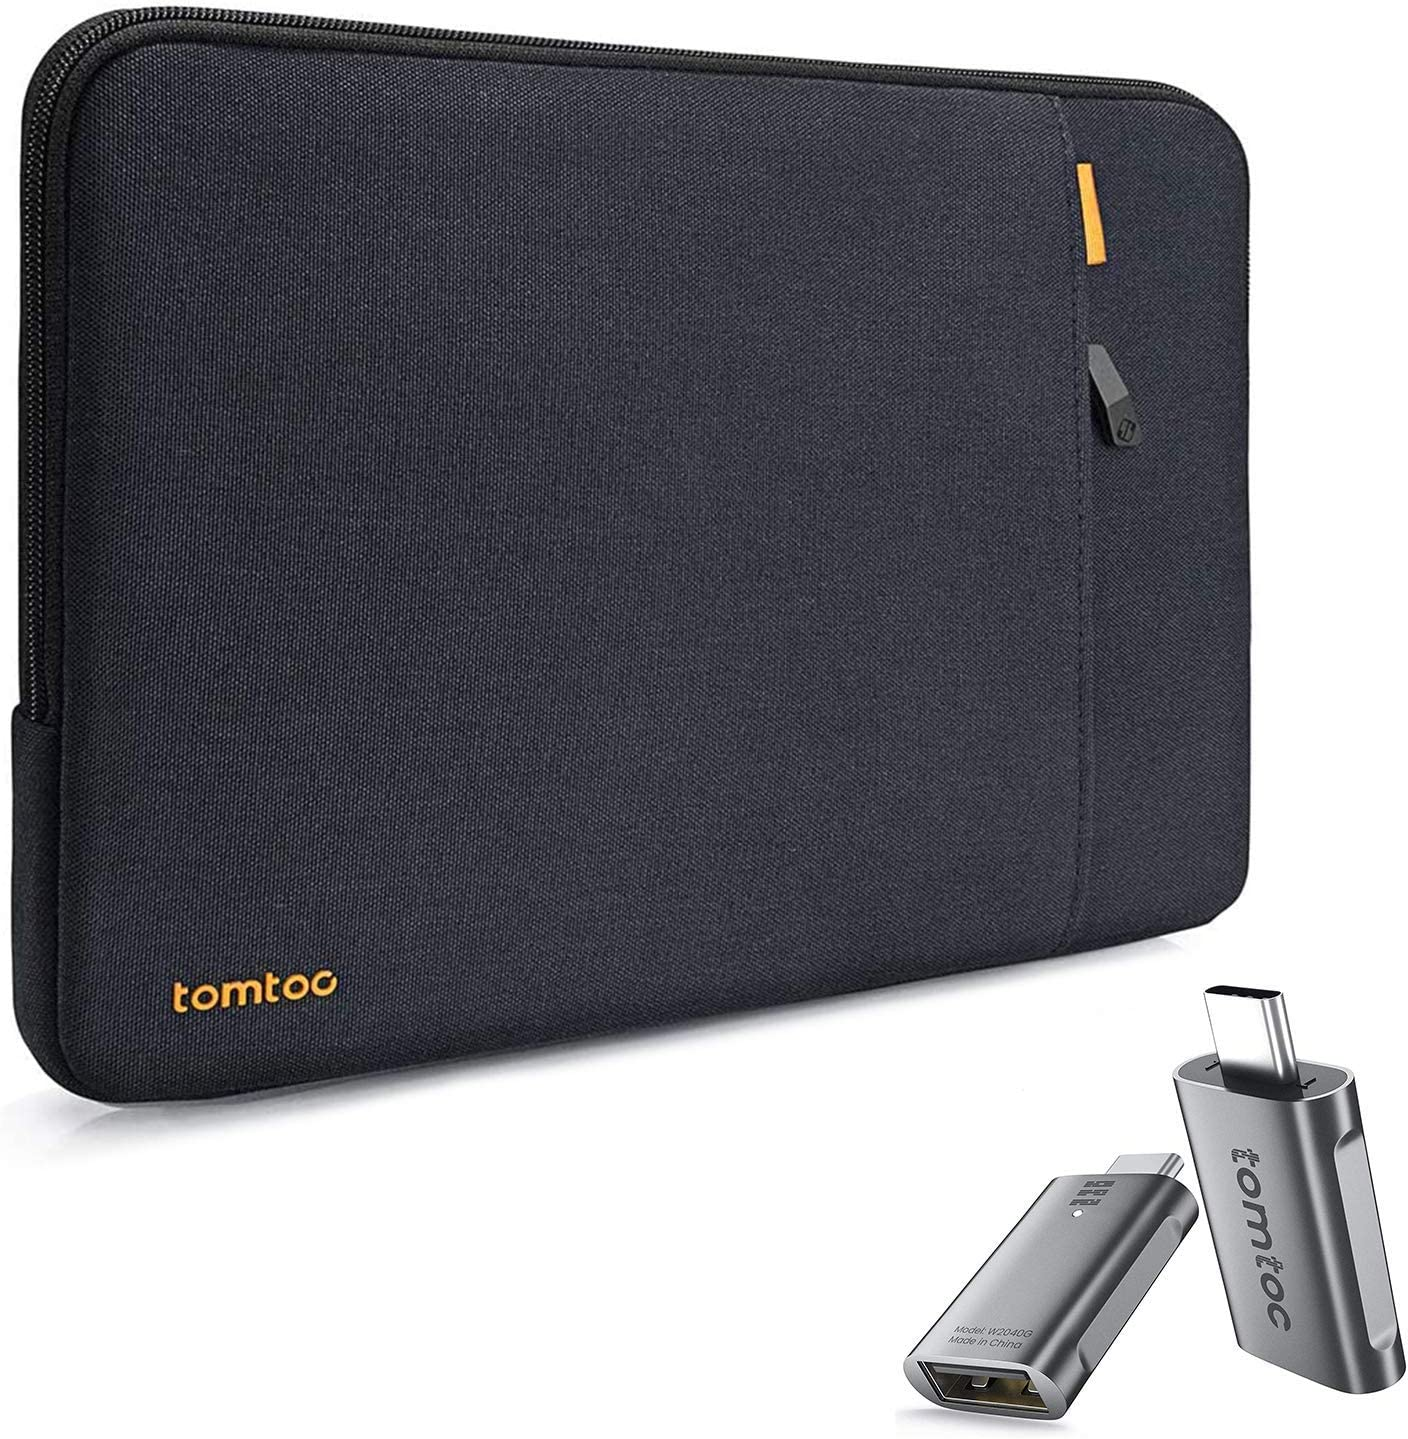 tomtoc 360 Protective Laptop Sleeve with USB C to USB Adapter Thunderbolt 3 to USB 3.0 Adapter for 13-inch New MacBook Air with Retina Display A1932 A2179, 13 Inch MacBook Pro USB-C A2251 A2289 A2159